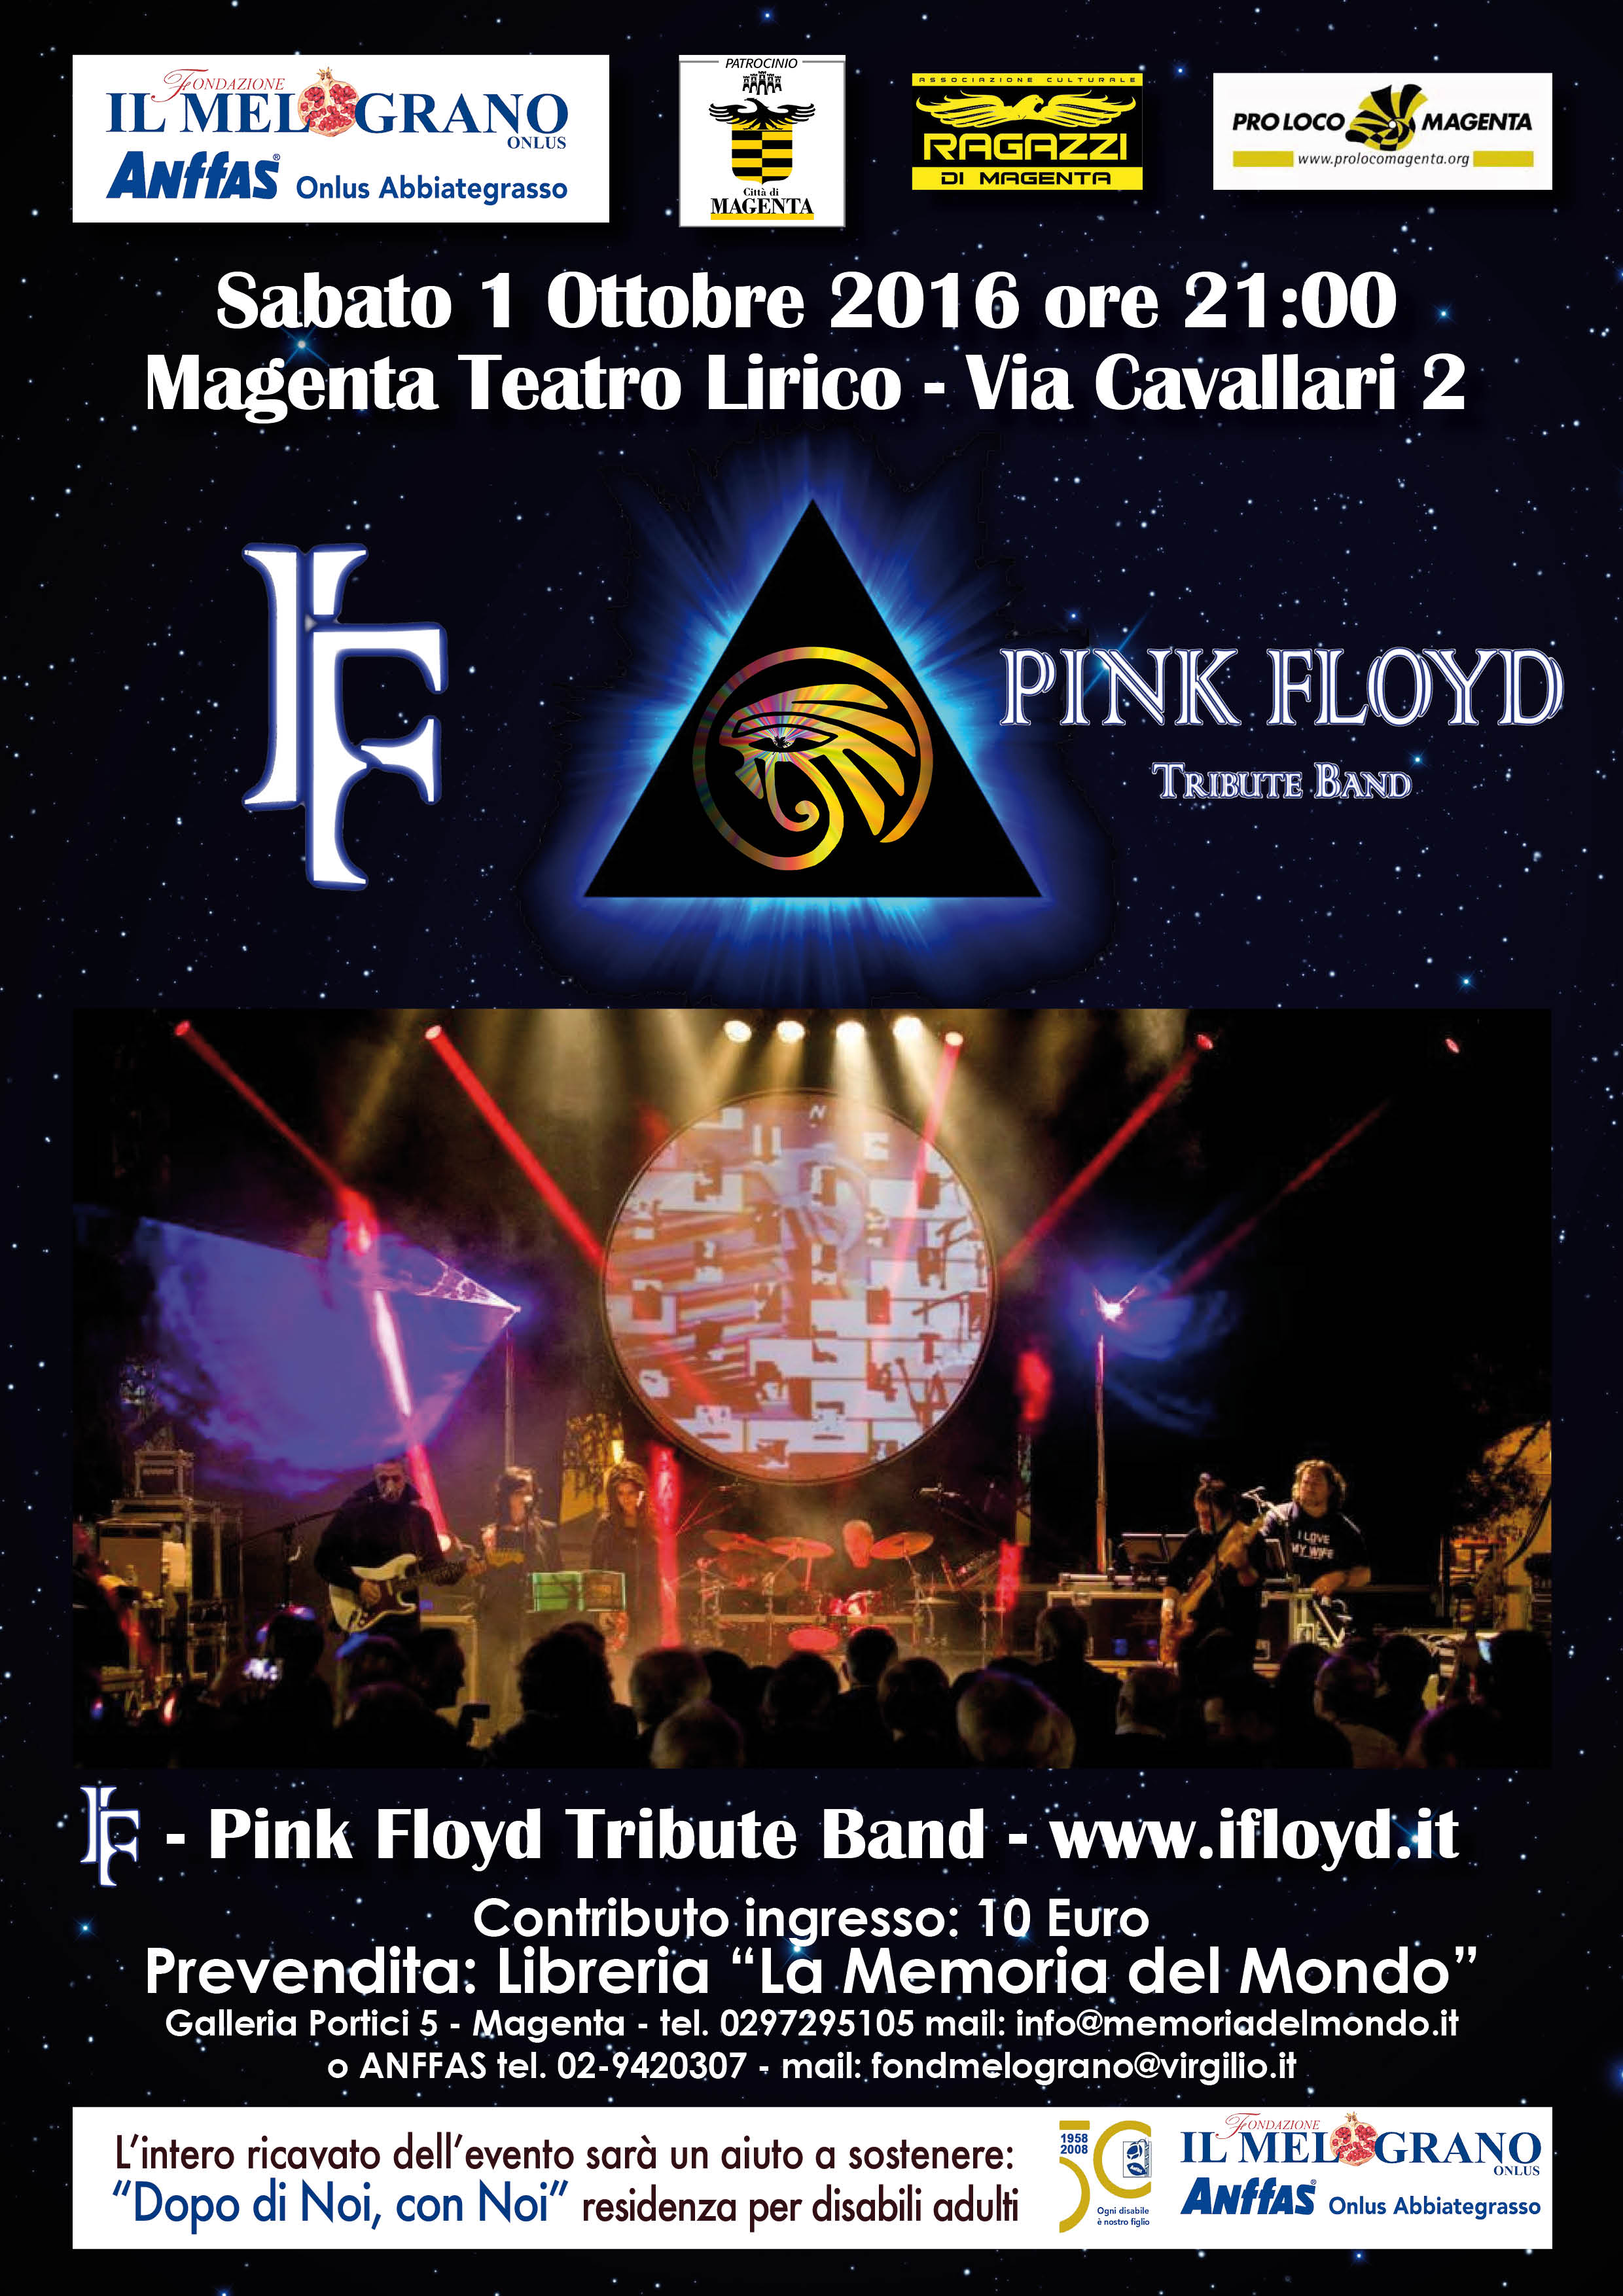 IF Pink Floyd Tribute Band